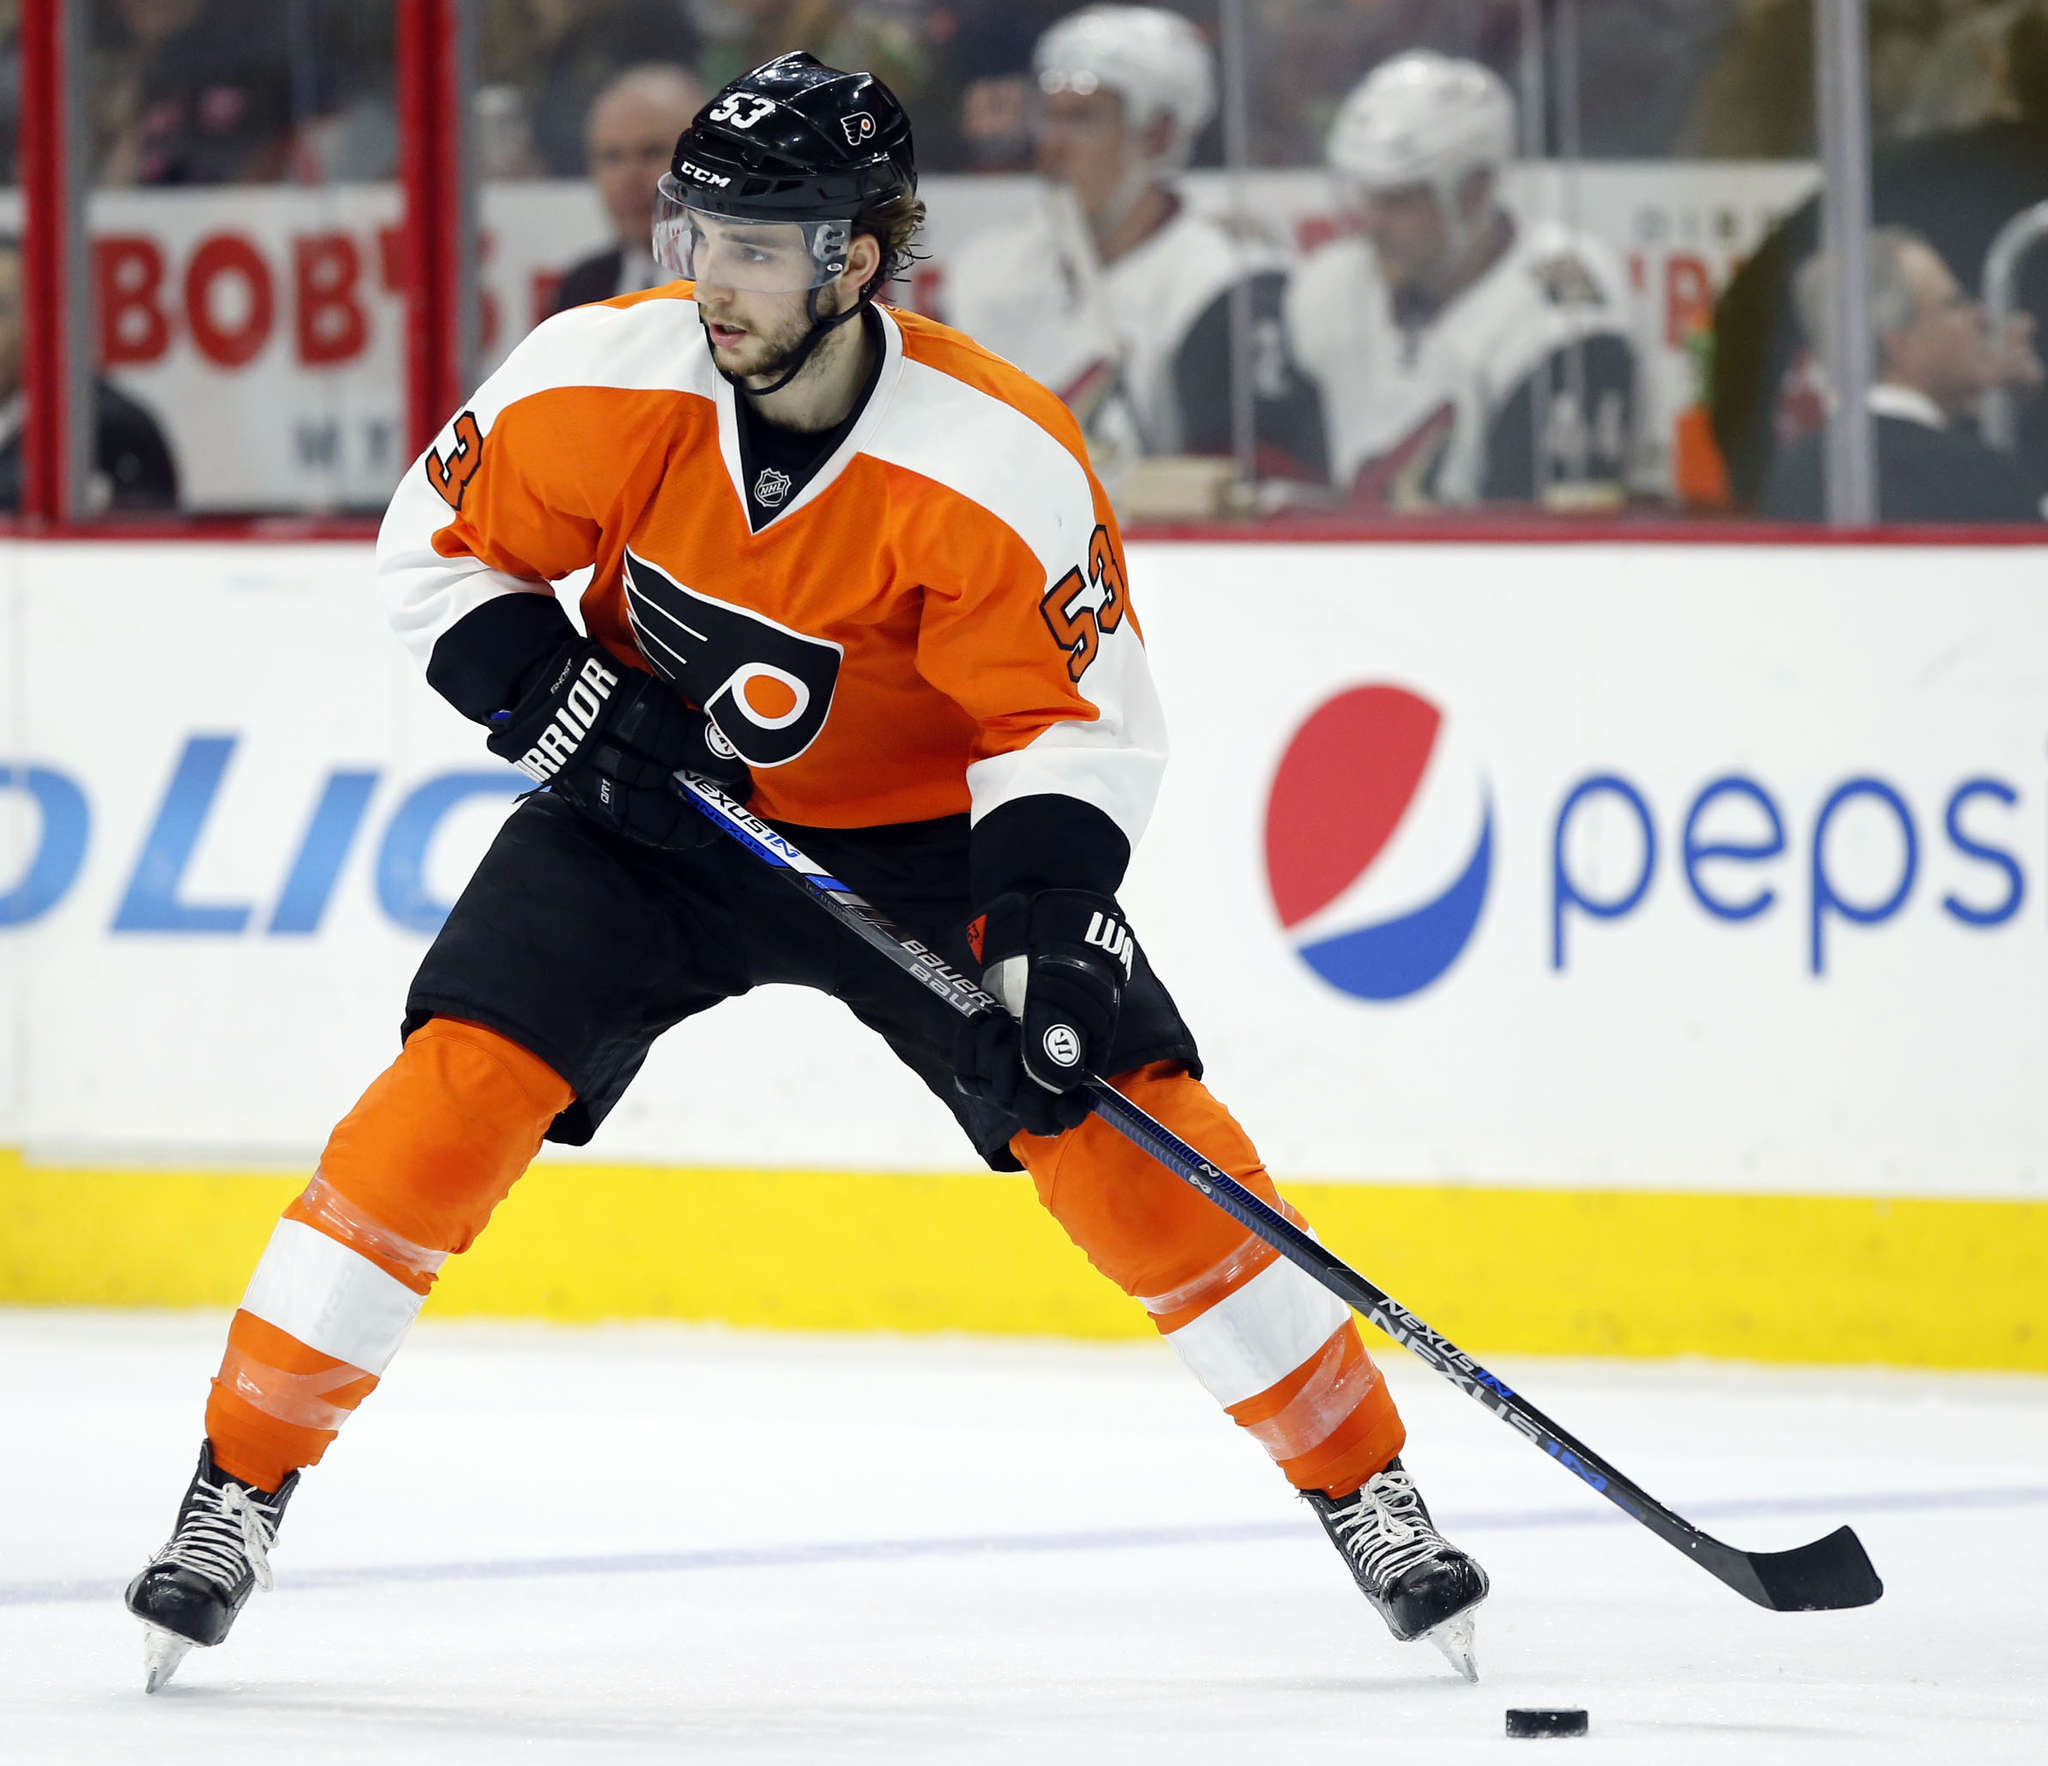 Rookie Shayne Gostisbehere has given the Flyers a boost and could be their MVP.